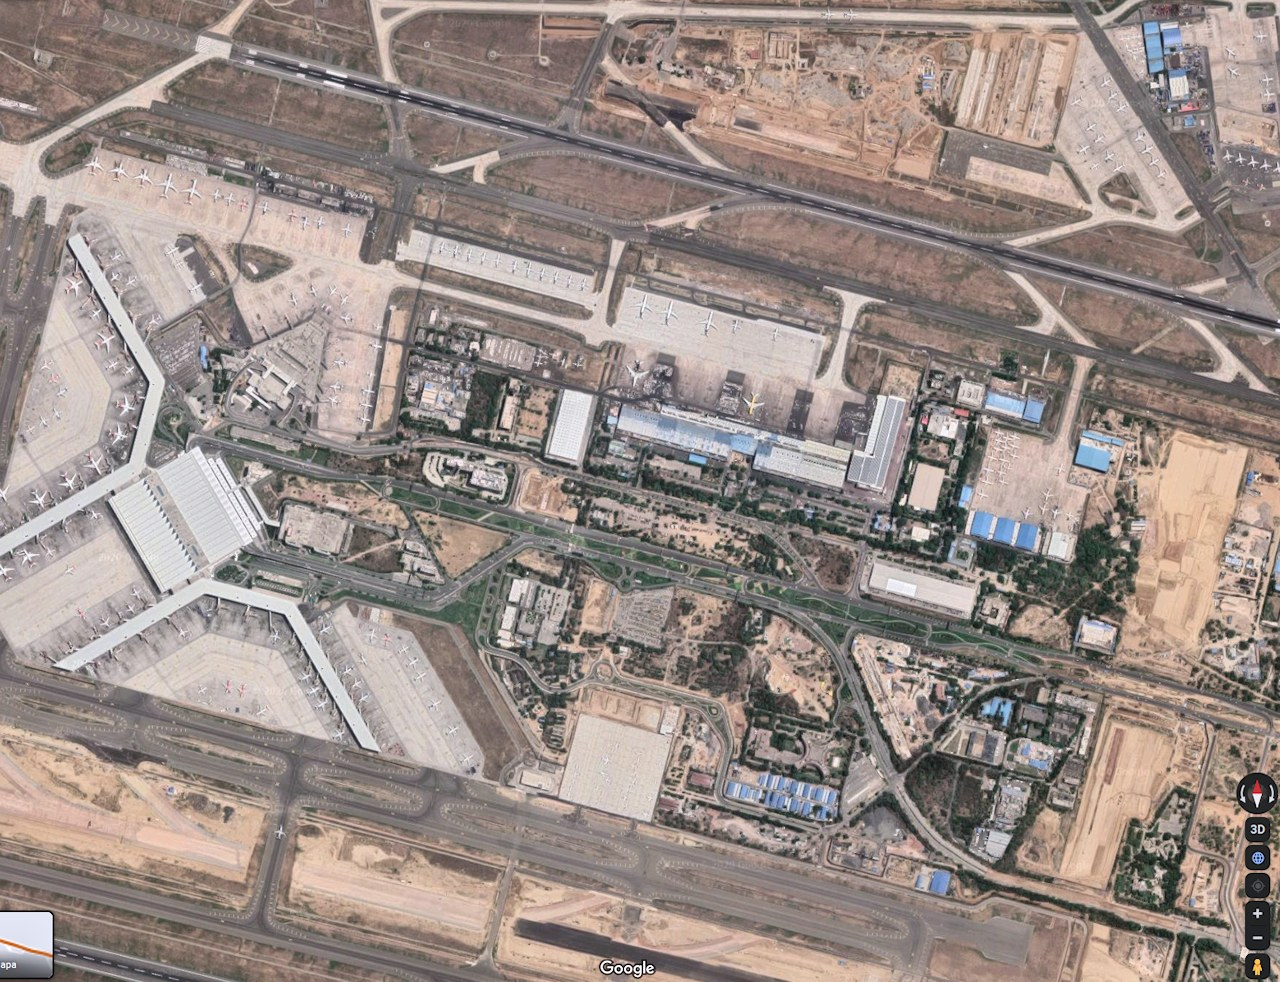 Delhi airport satellite view